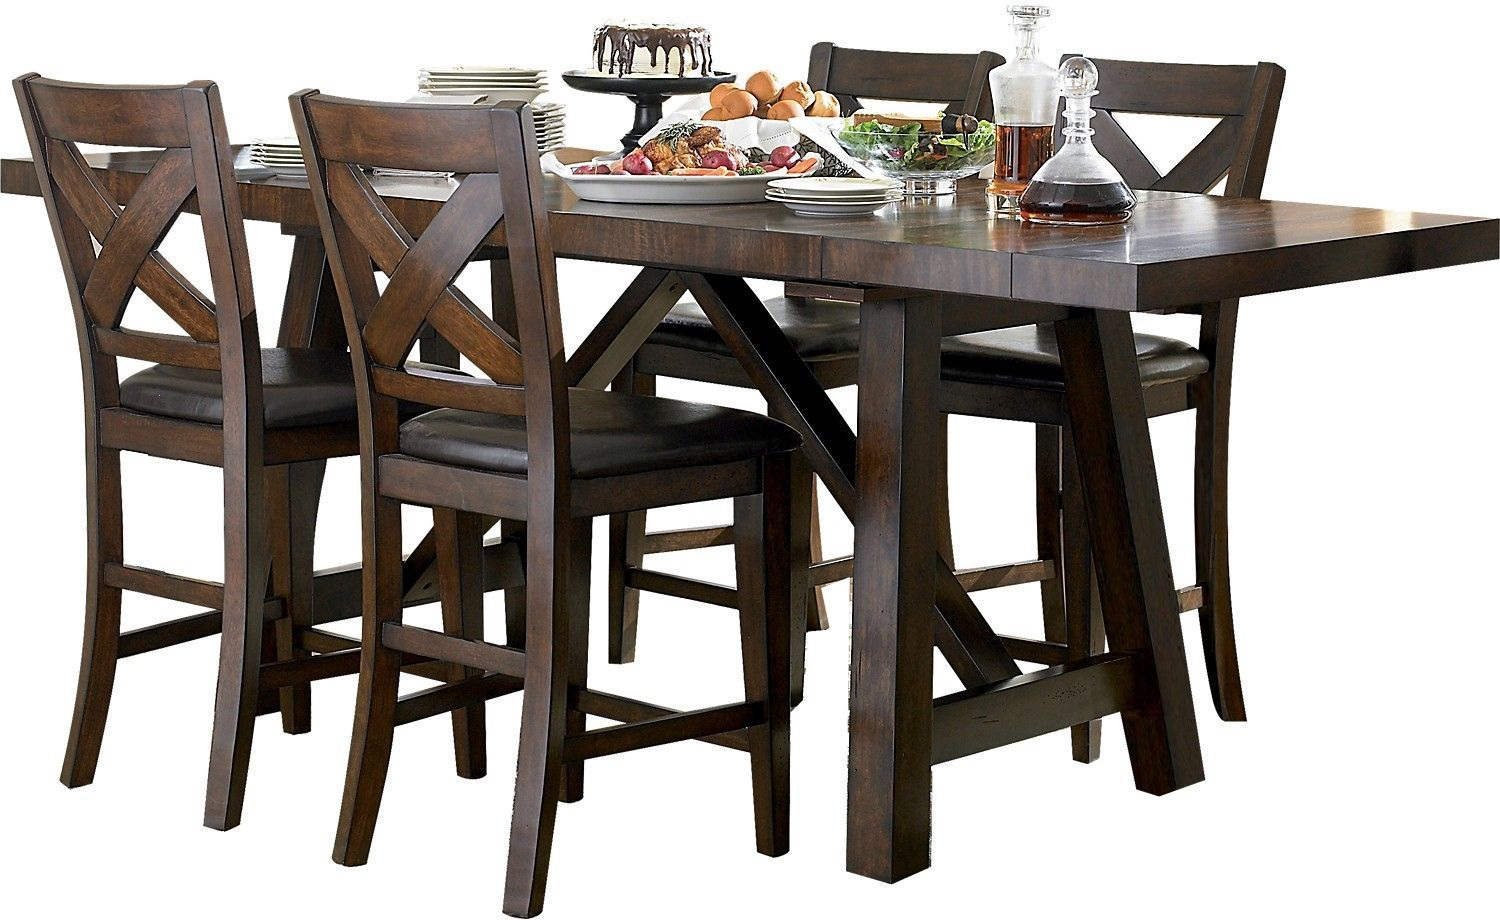 Adara 5 Piece Counter Height Dining Package Rectangle Table